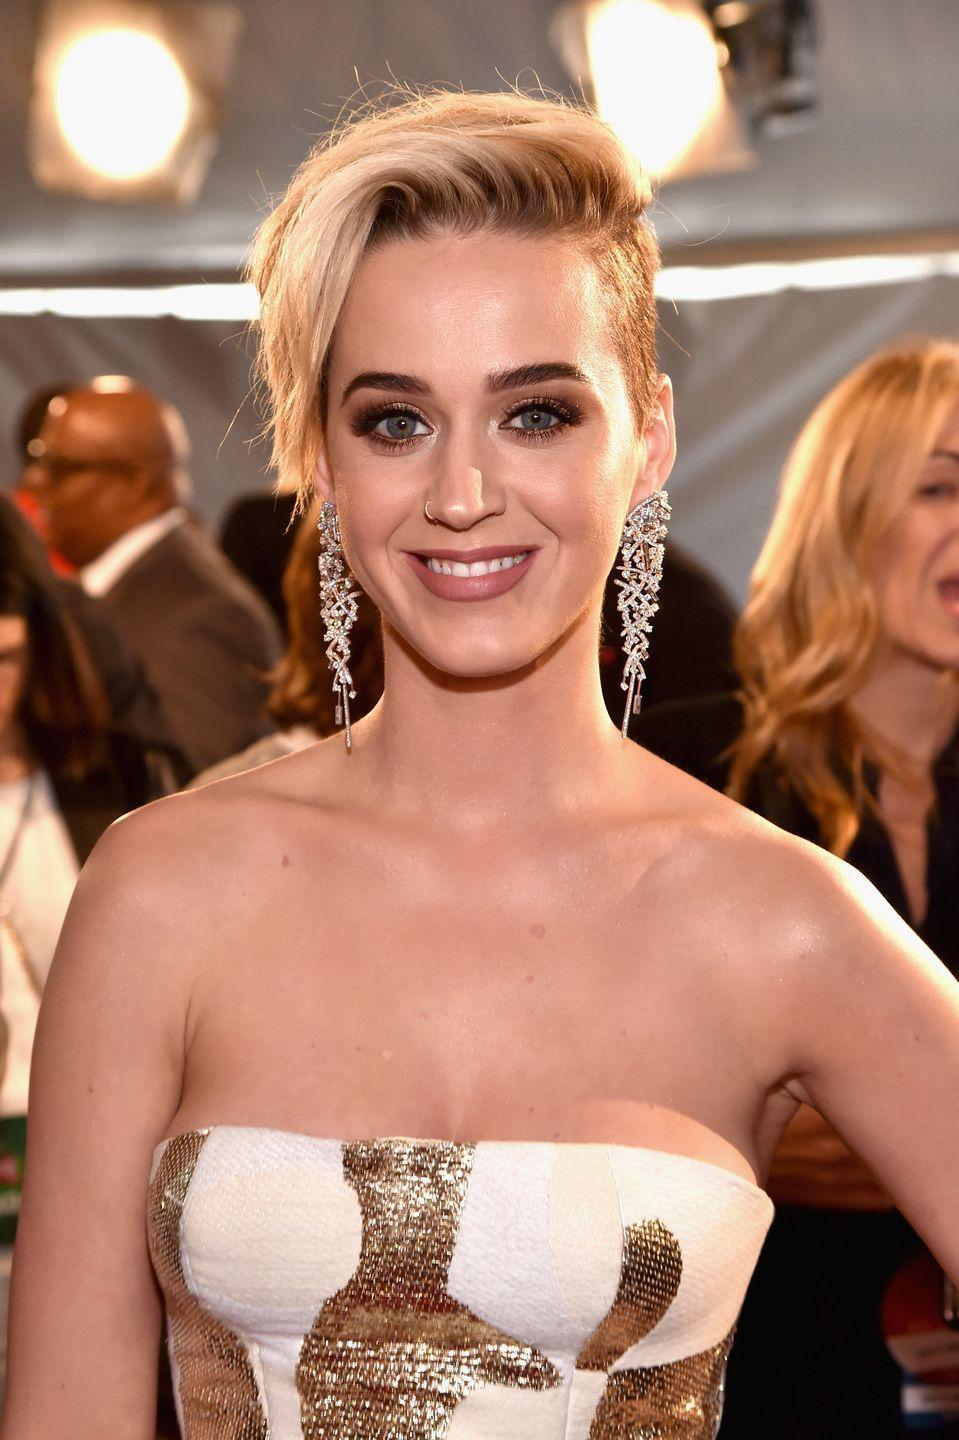 "<p>""I wrote a song about it,"" she said in a <a href=""http://people.com/music/katy-perry-witness-livestream/"" rel=""nofollow noopener"" target=""_blank"" data-ylk=""slk:livestream"" class=""link rapid-noclick-resp"">livestream</a> in 2017. ""I feel ashamed that I would have those thoughts, feel that low and that depressed.""</p>"